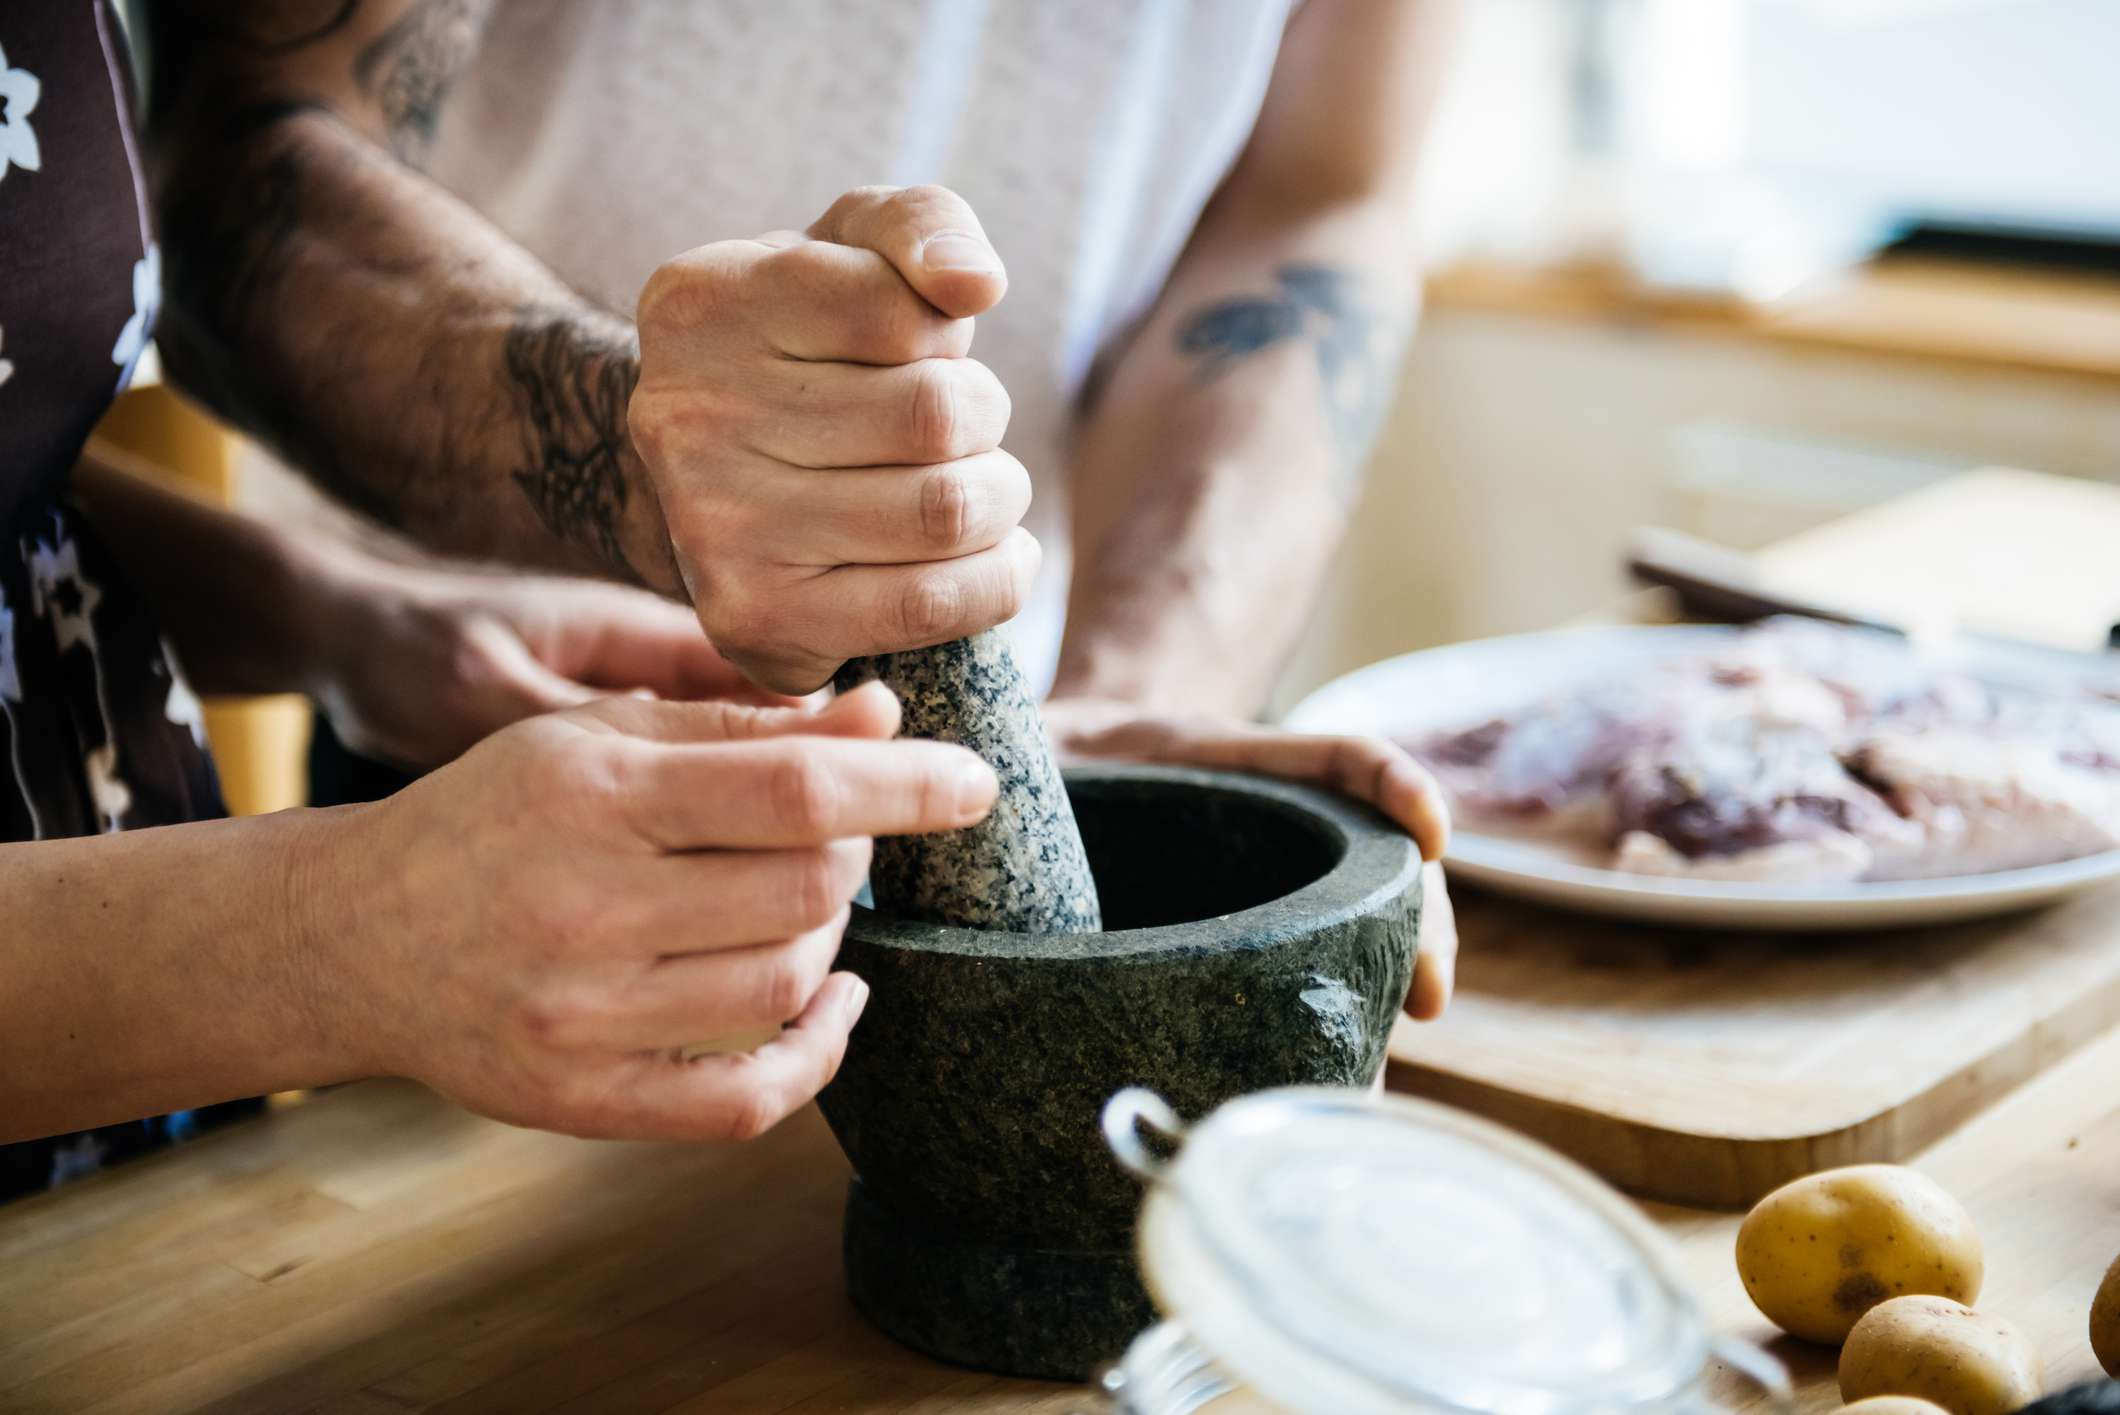 Working with mortar and pestle